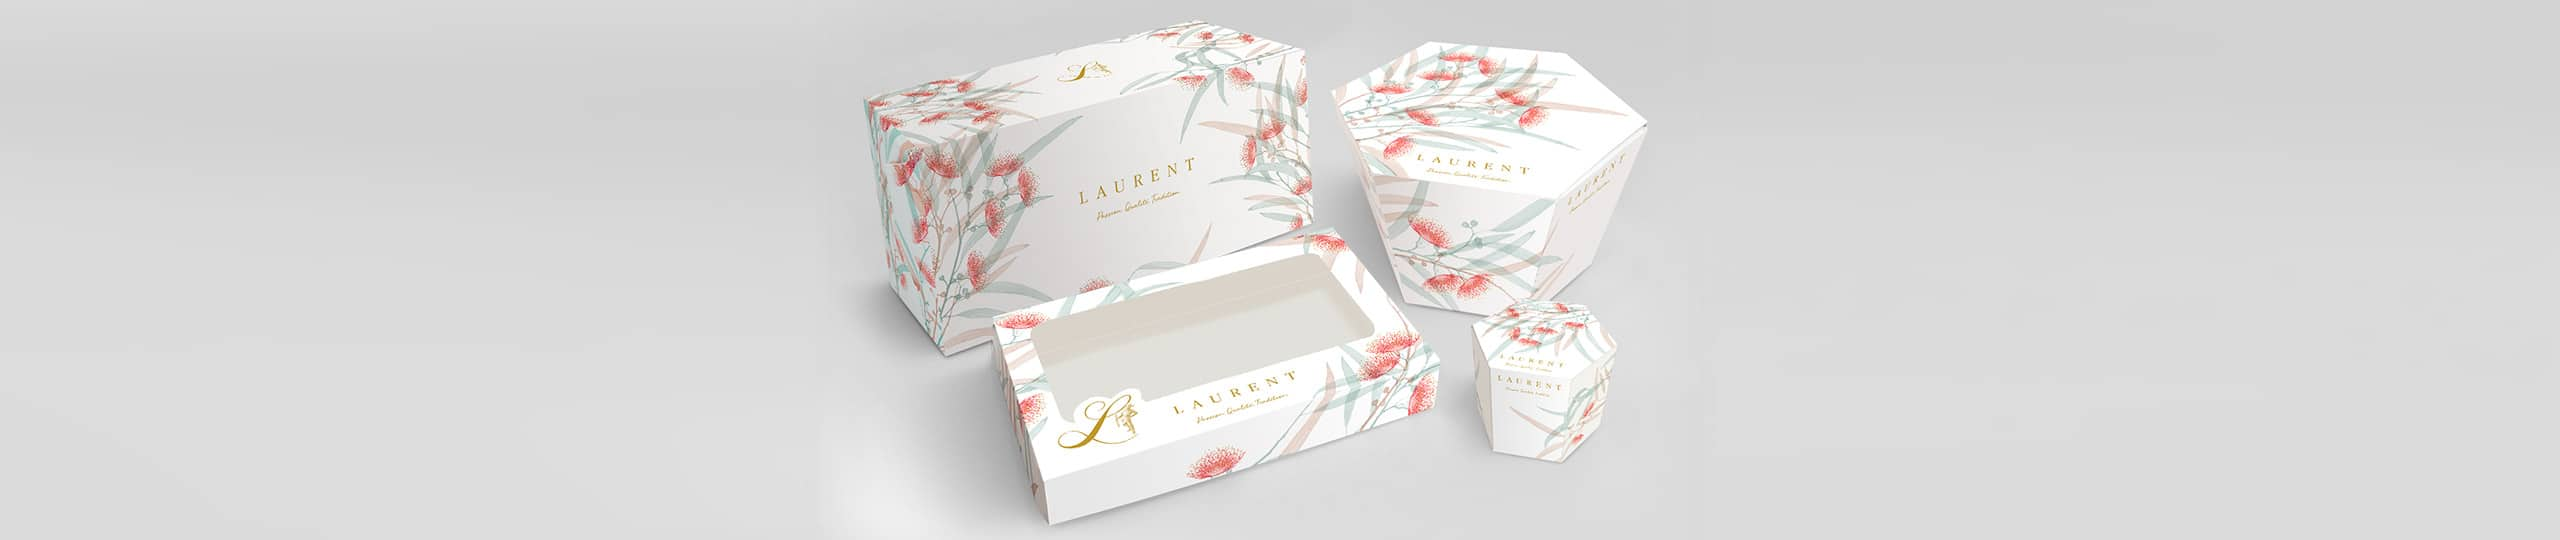 Laurent Christmas Packaging Brand Strategy Marketing Campaign Brand Design